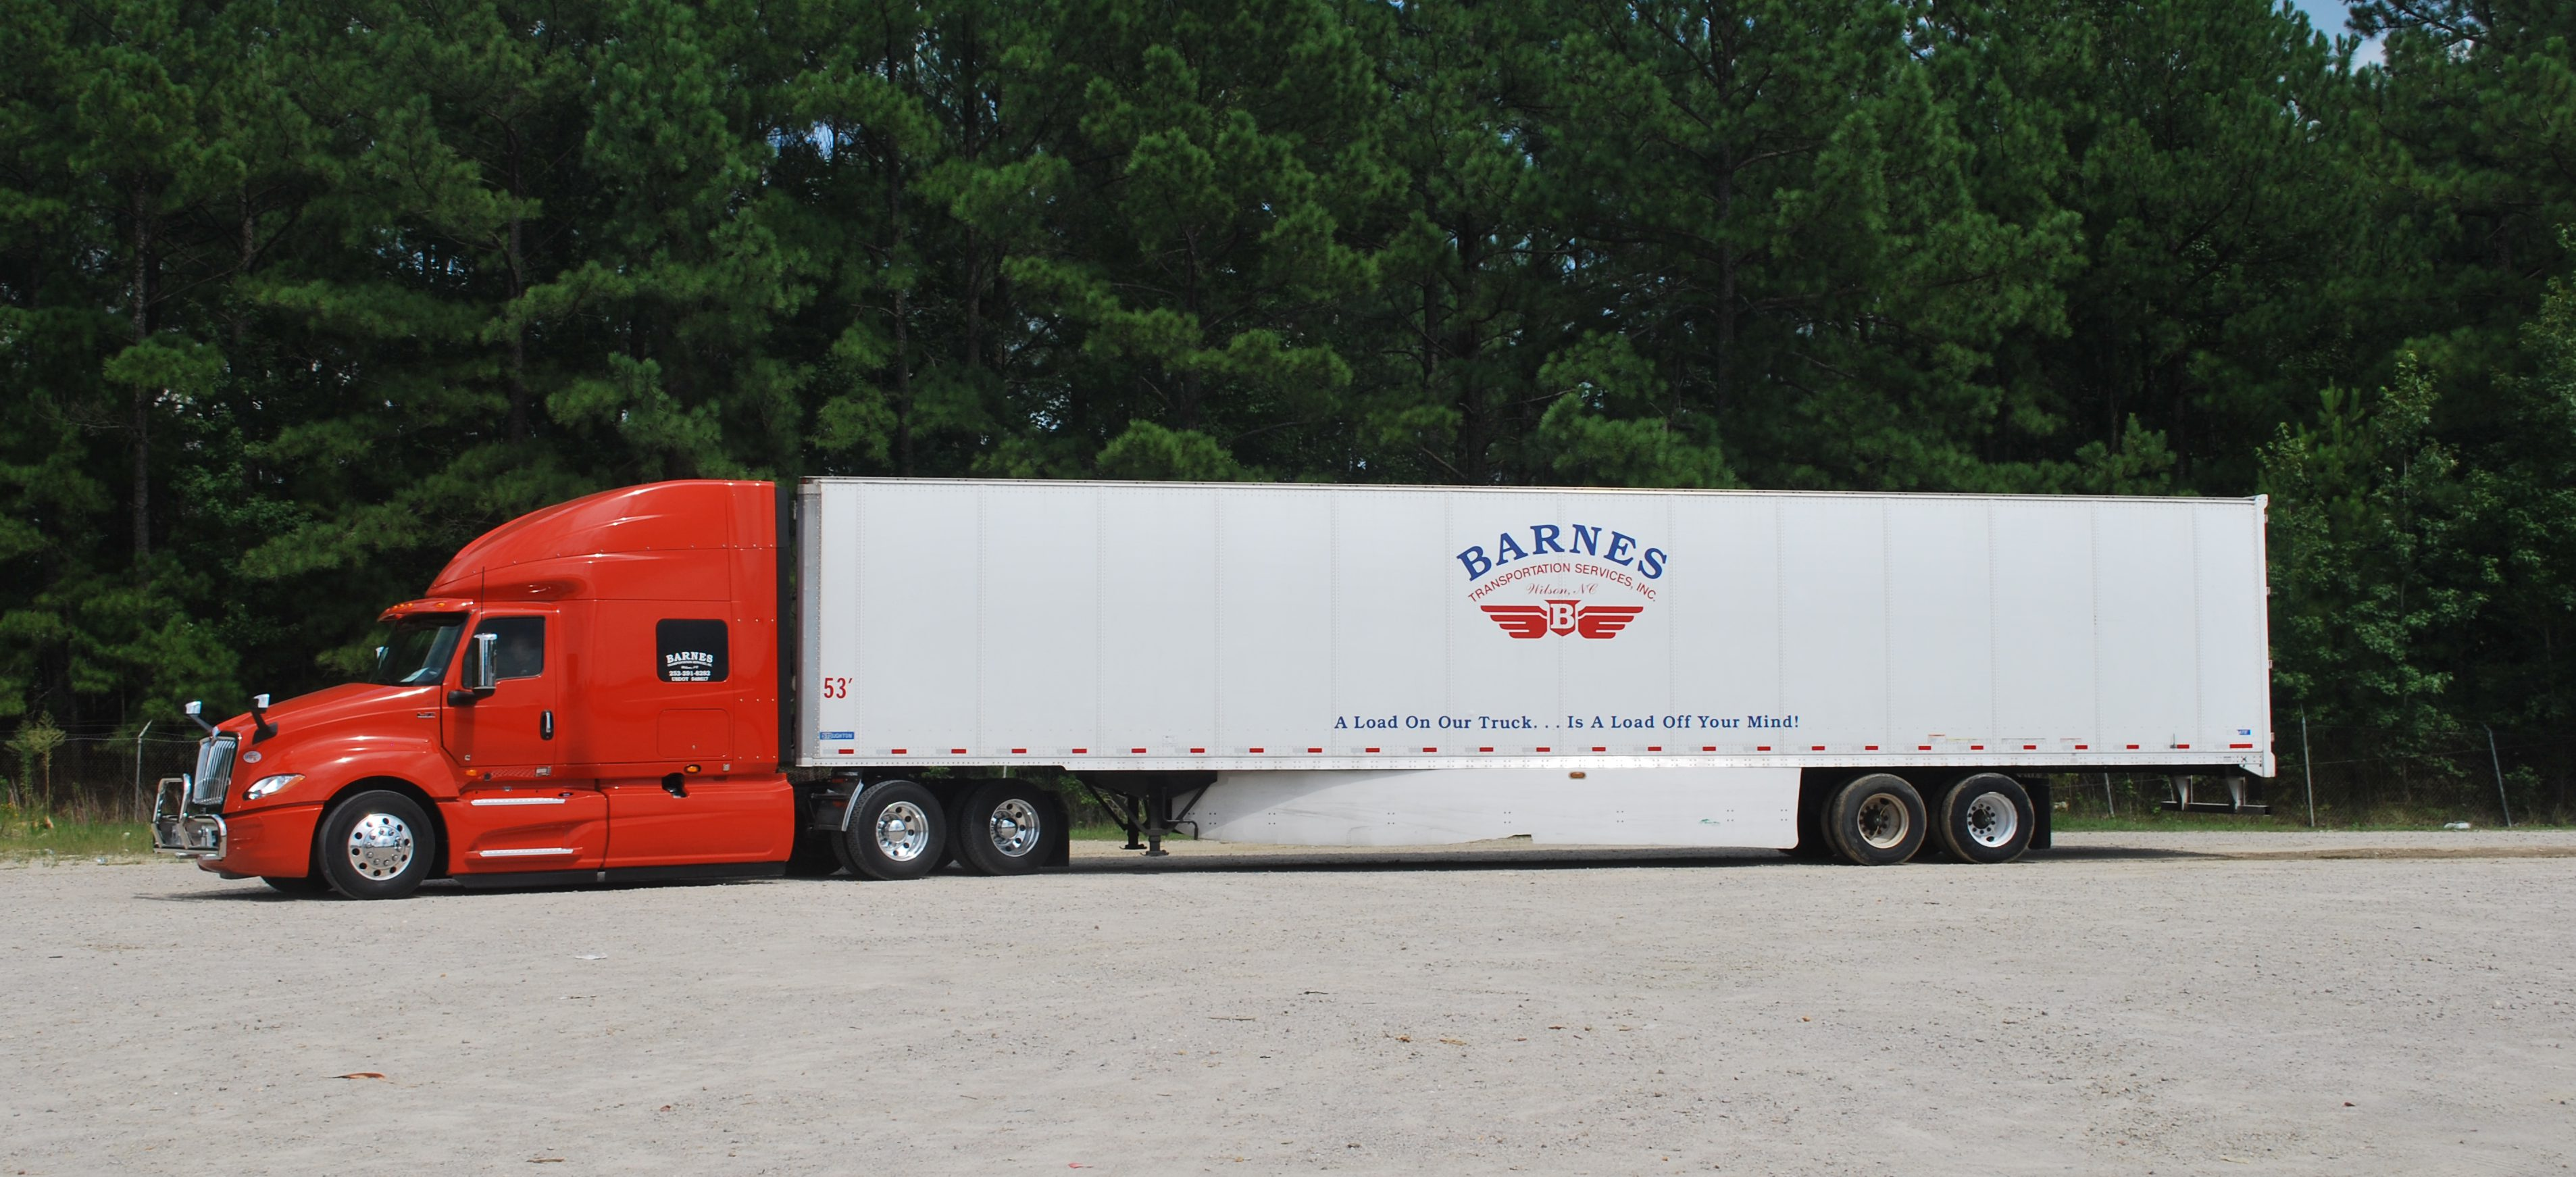 Barnes Transportation Services